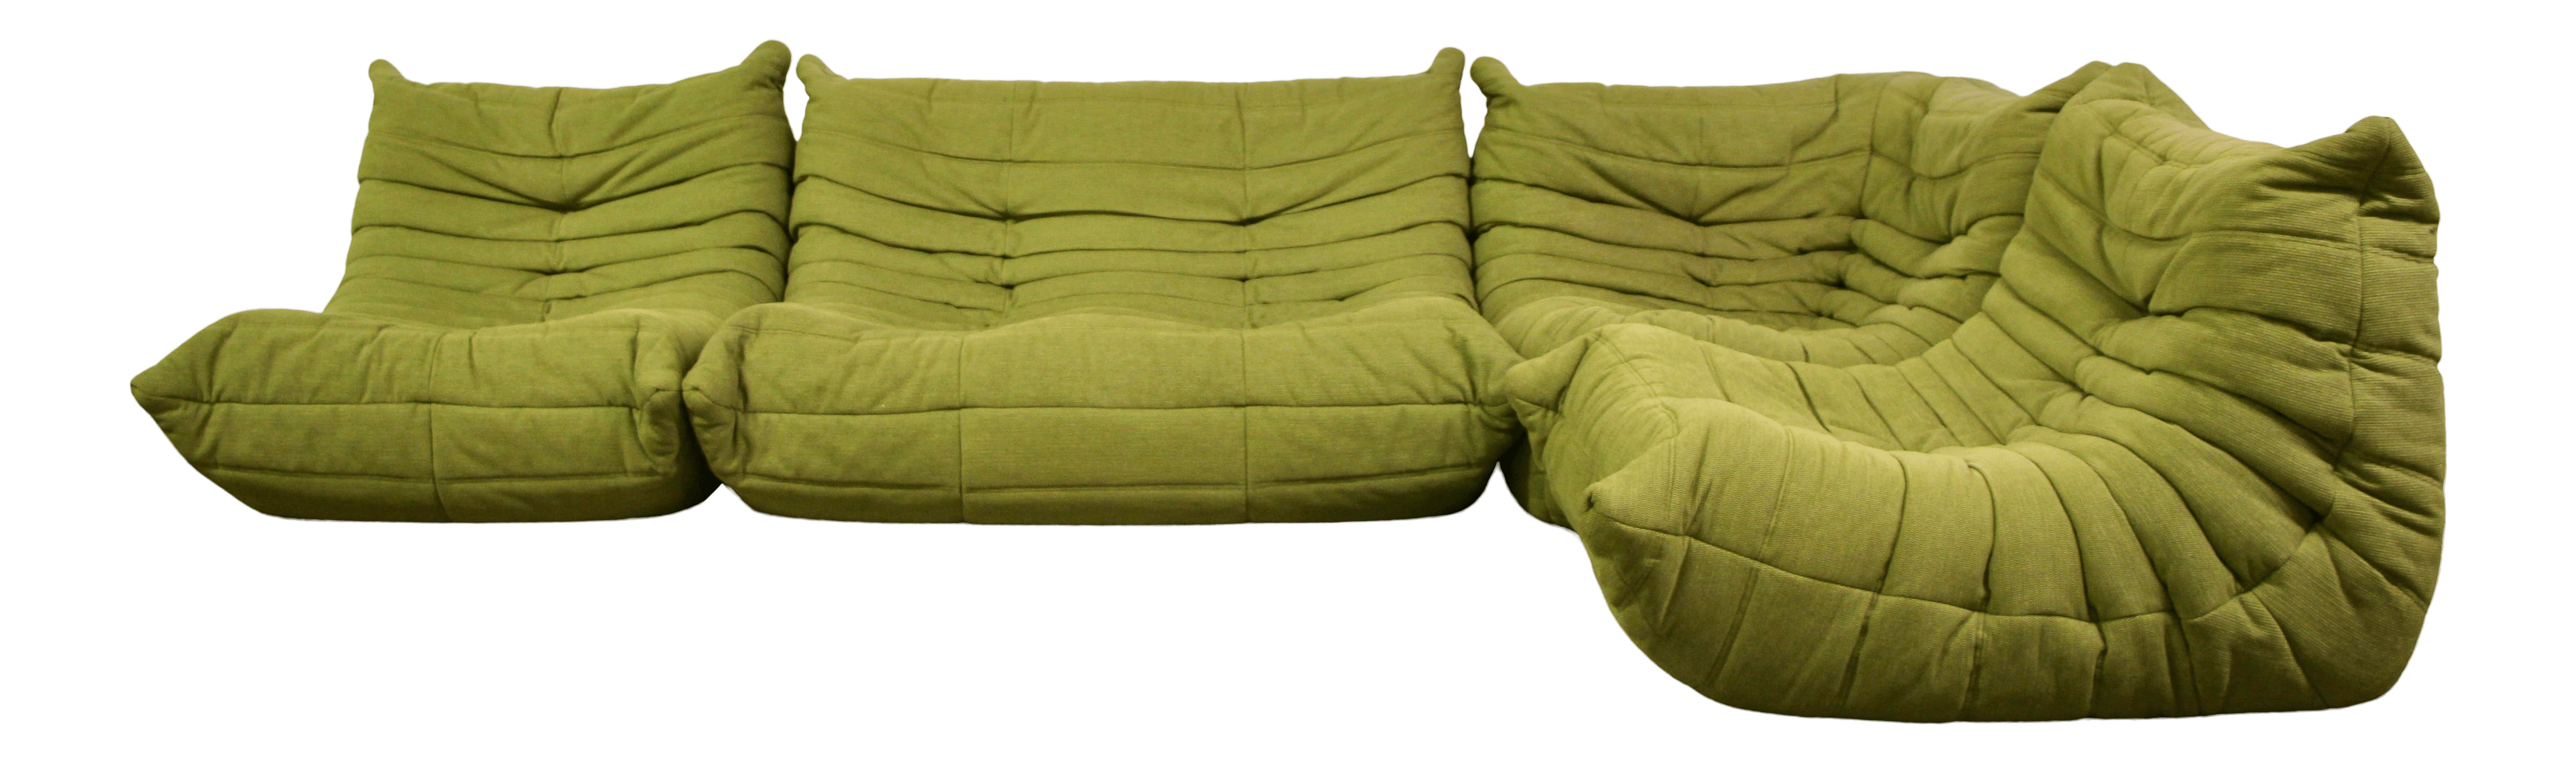 Review 4x6 Sofa Gently Used Ligne Roset Furniture Up To 60 Off At Chairish